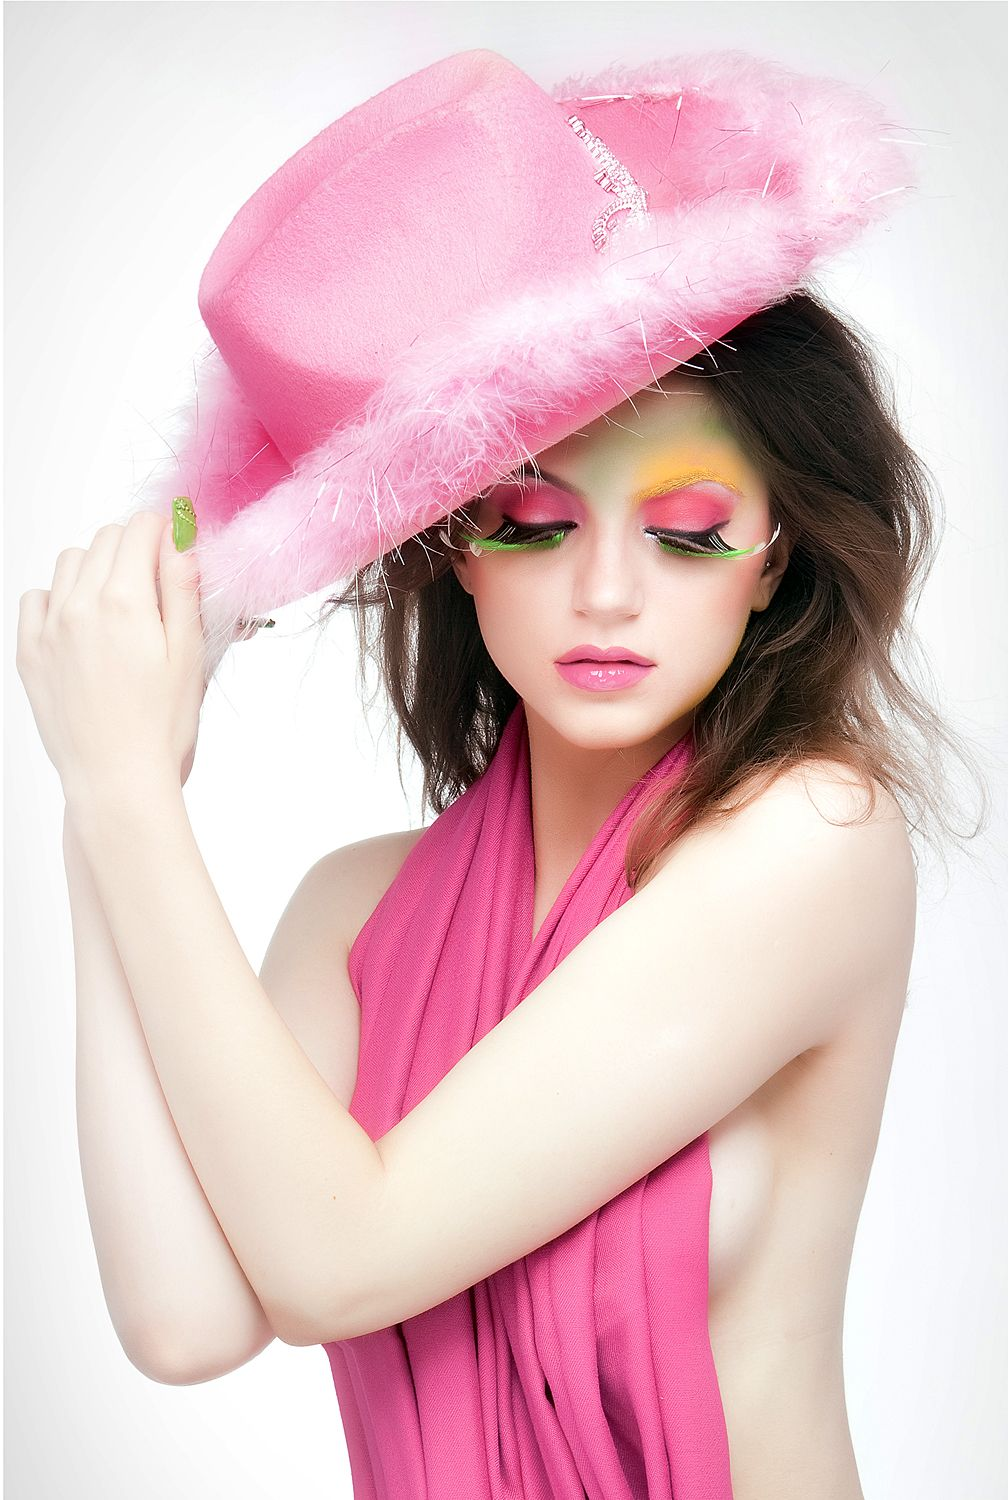 Sensuality in pink shades